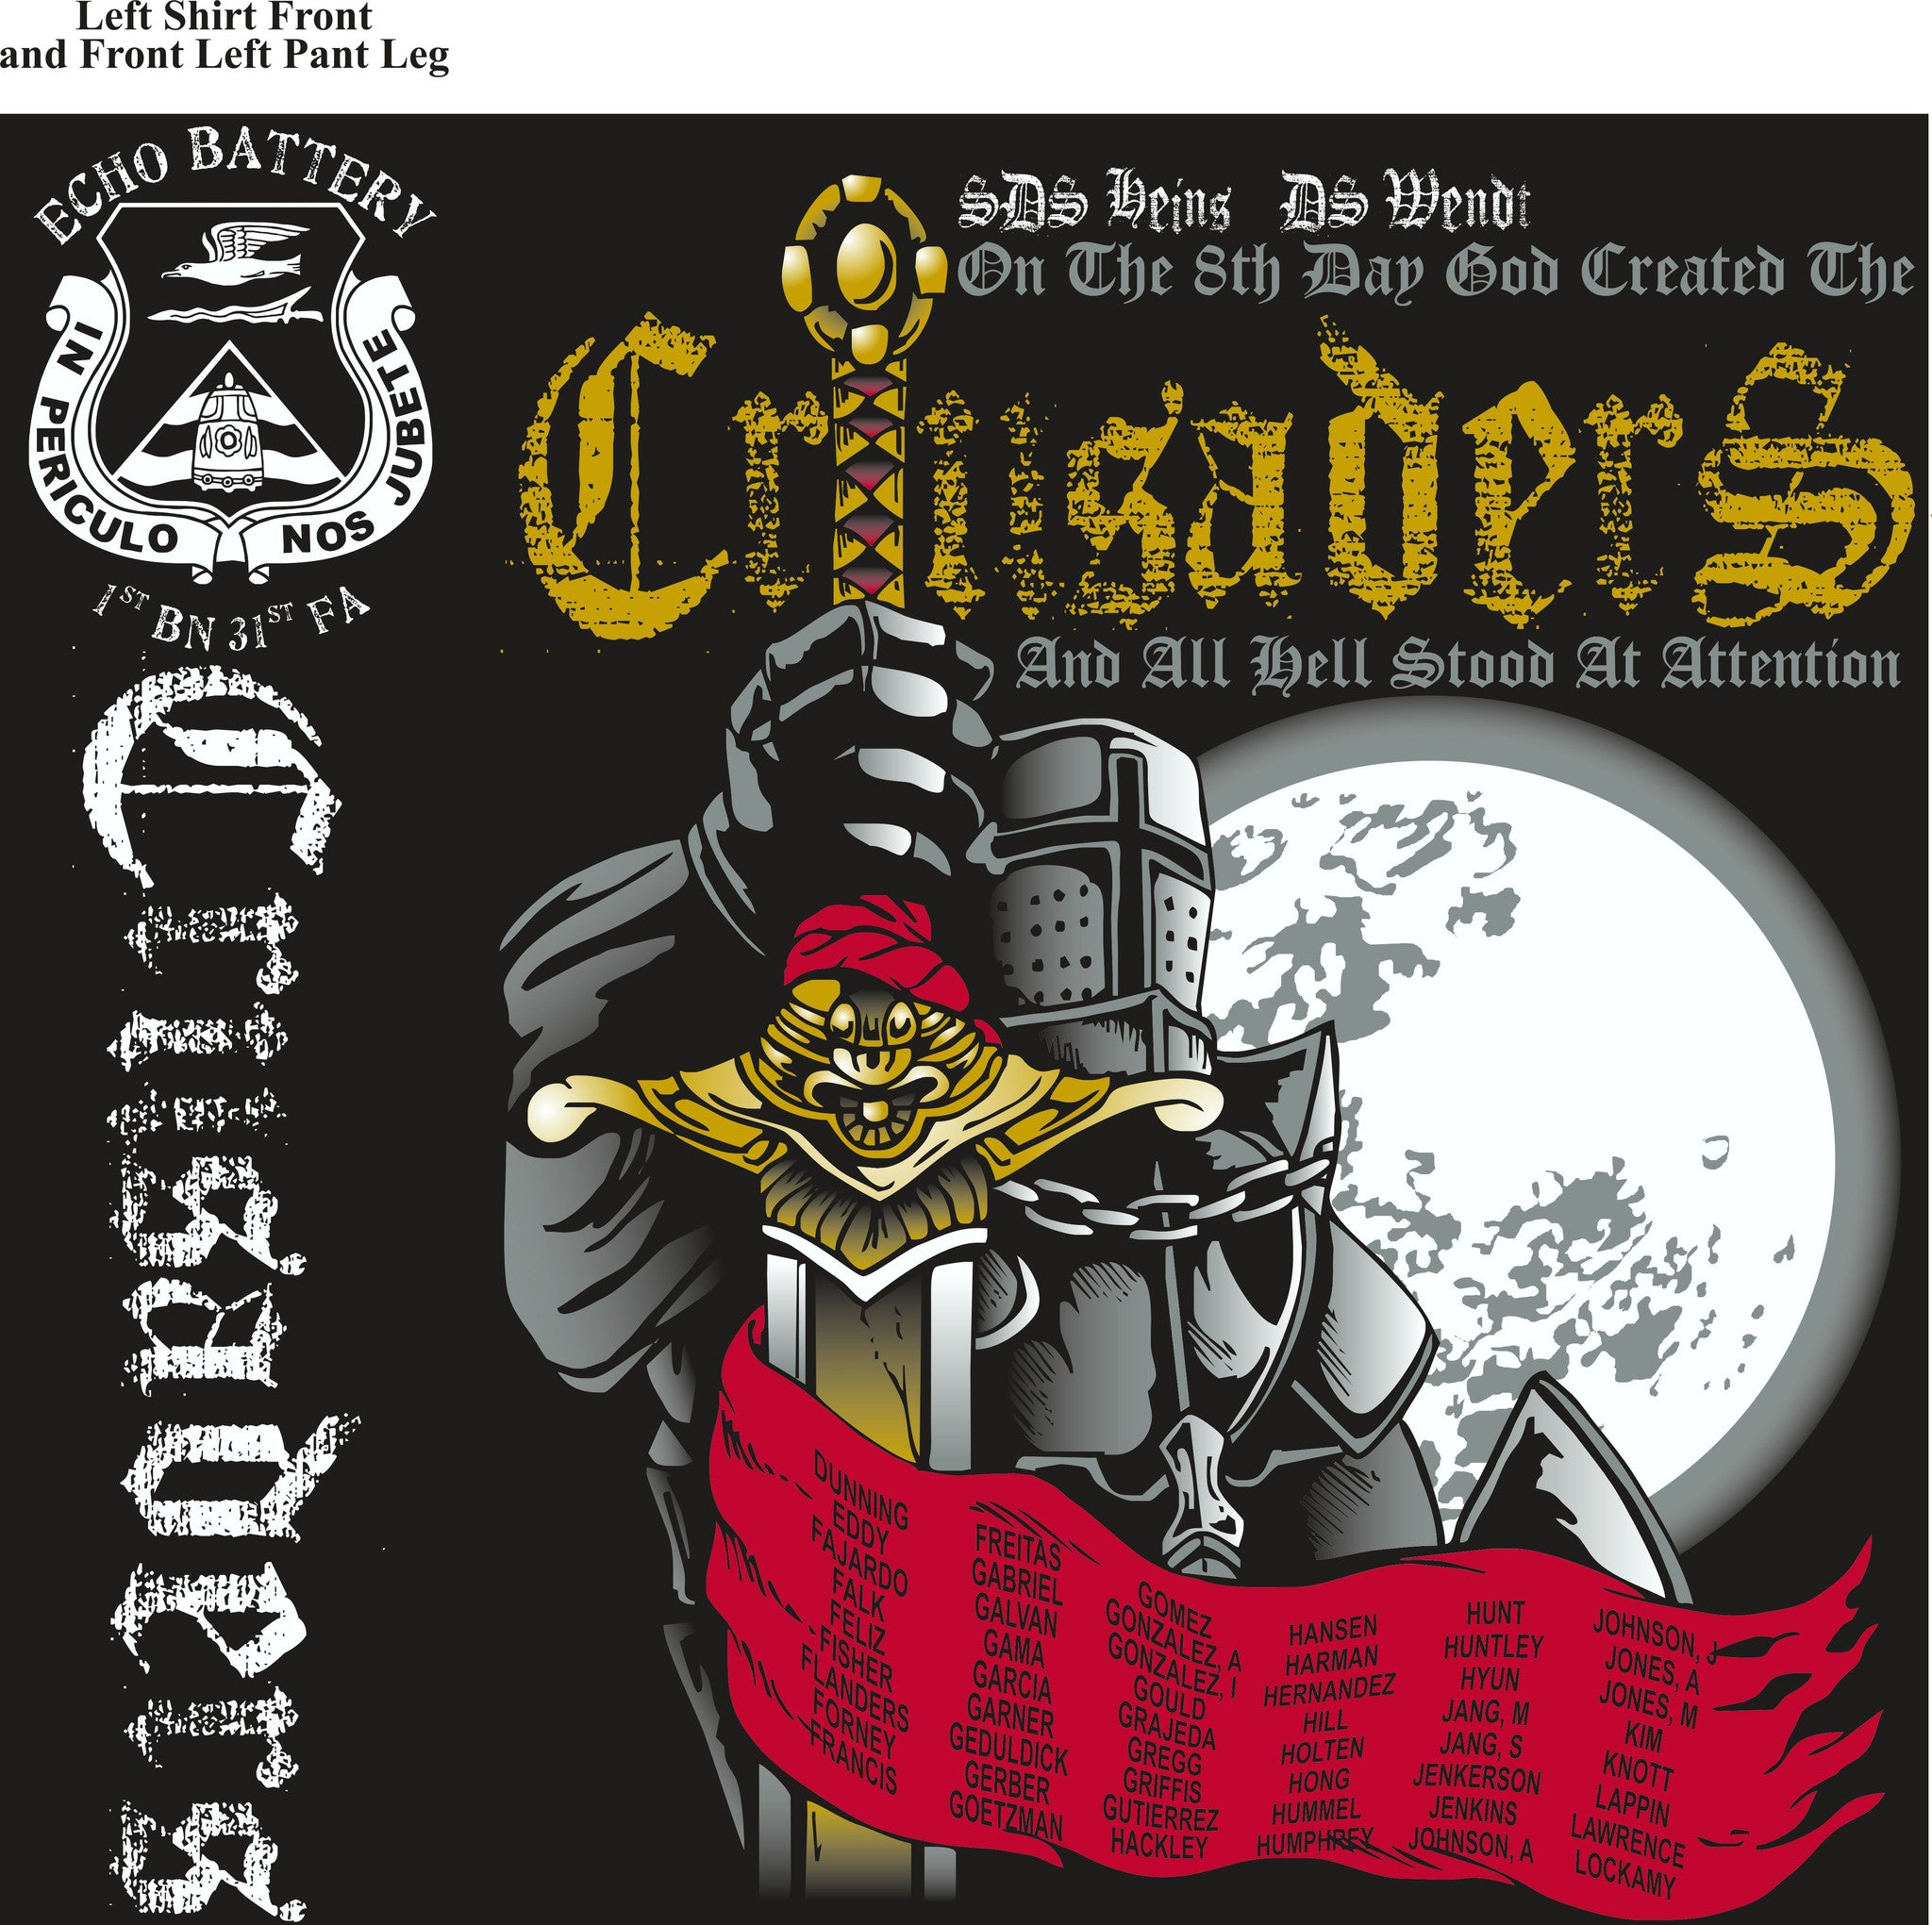 PLATOON SHIRTS (2nd generation print) ECHO 1st 31st CRUSADERS NOV 2016